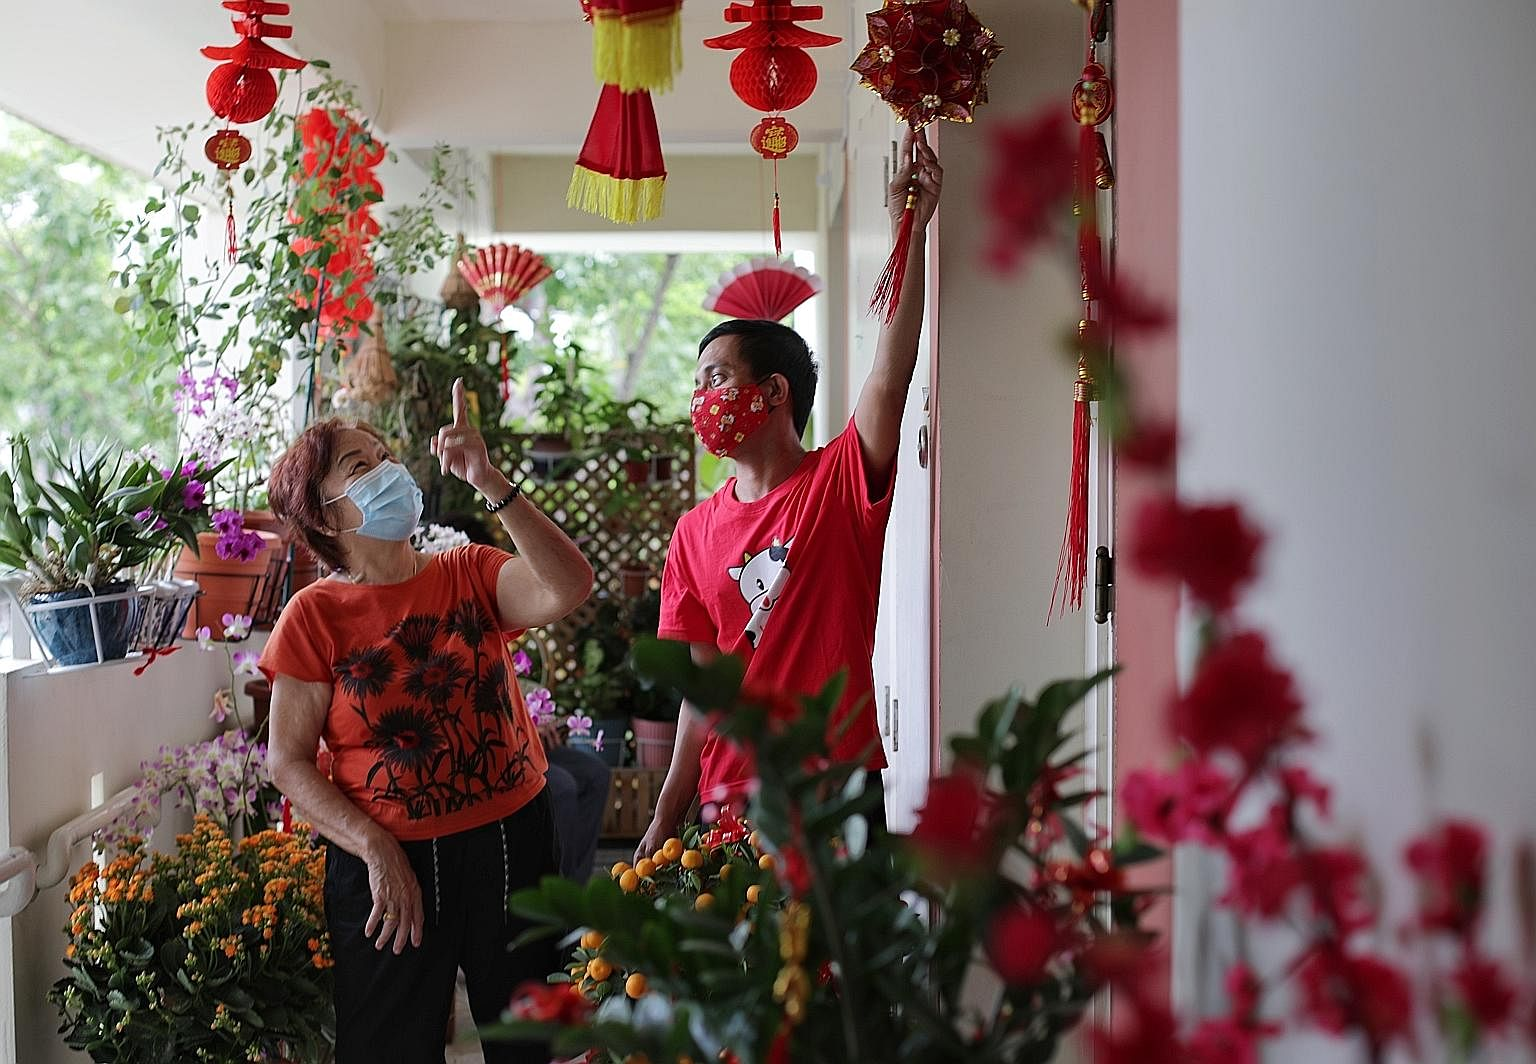 Mr Abdullah Abdul Rahman (right) showing his Chinese New Year decorations to retiree Mary Tay, 70. The resident of the fourth floor of Block 117, Tampines Street 11, put up the festive items and plants to show his appreciation to his elderly neighbou